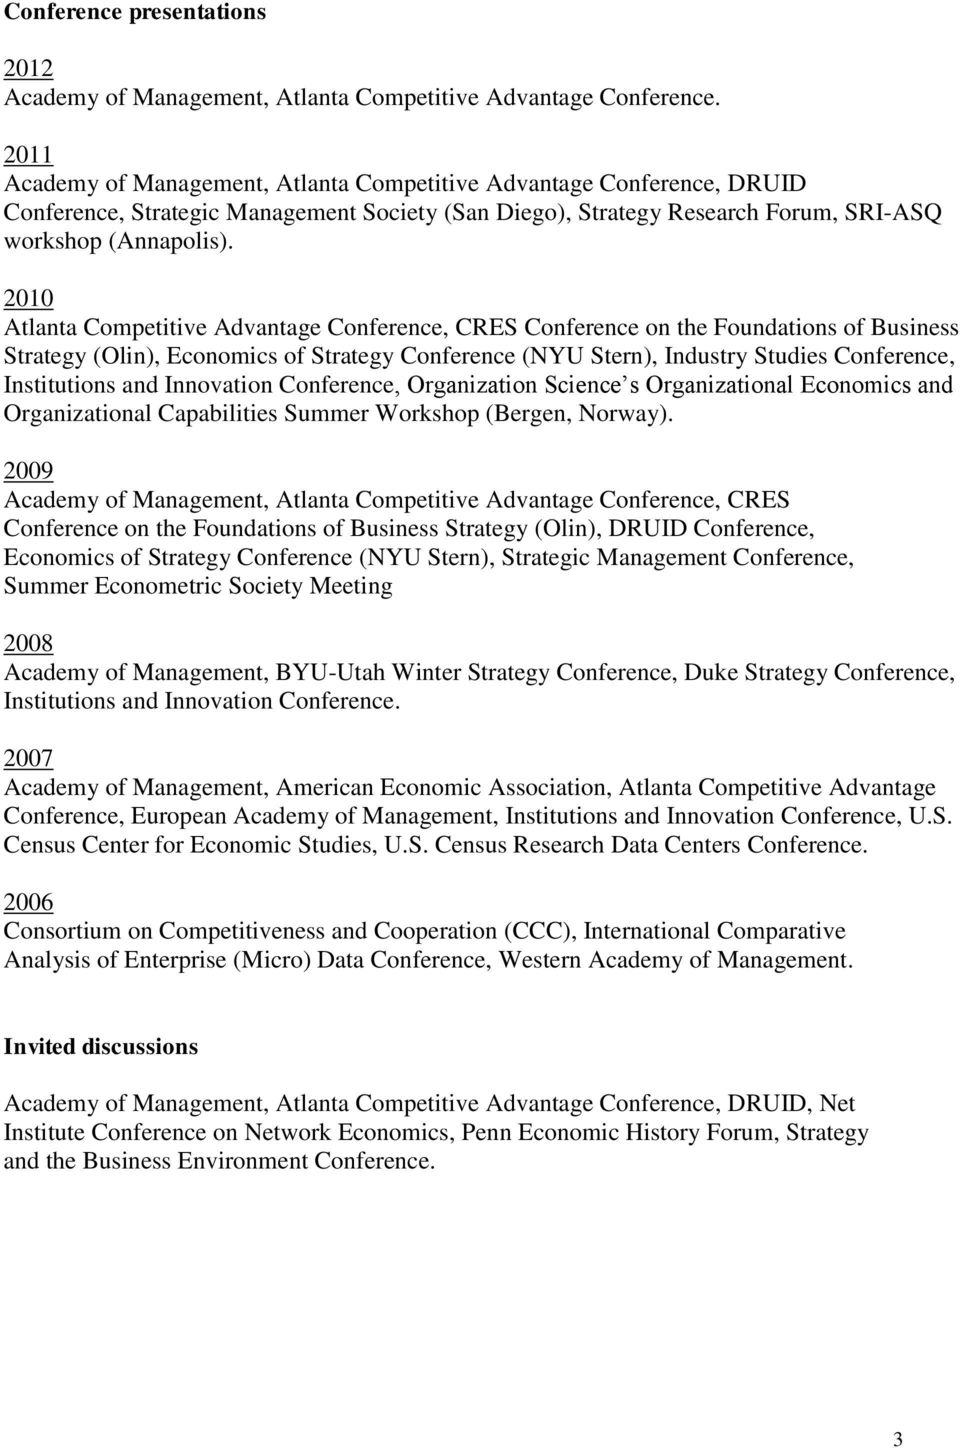 2010 Atlanta Competitive Advantage Conference, CRES Conference on the Foundations of Business Strategy (Olin), Economics of Strategy Conference (NYU Stern), Industry Studies Conference, Institutions